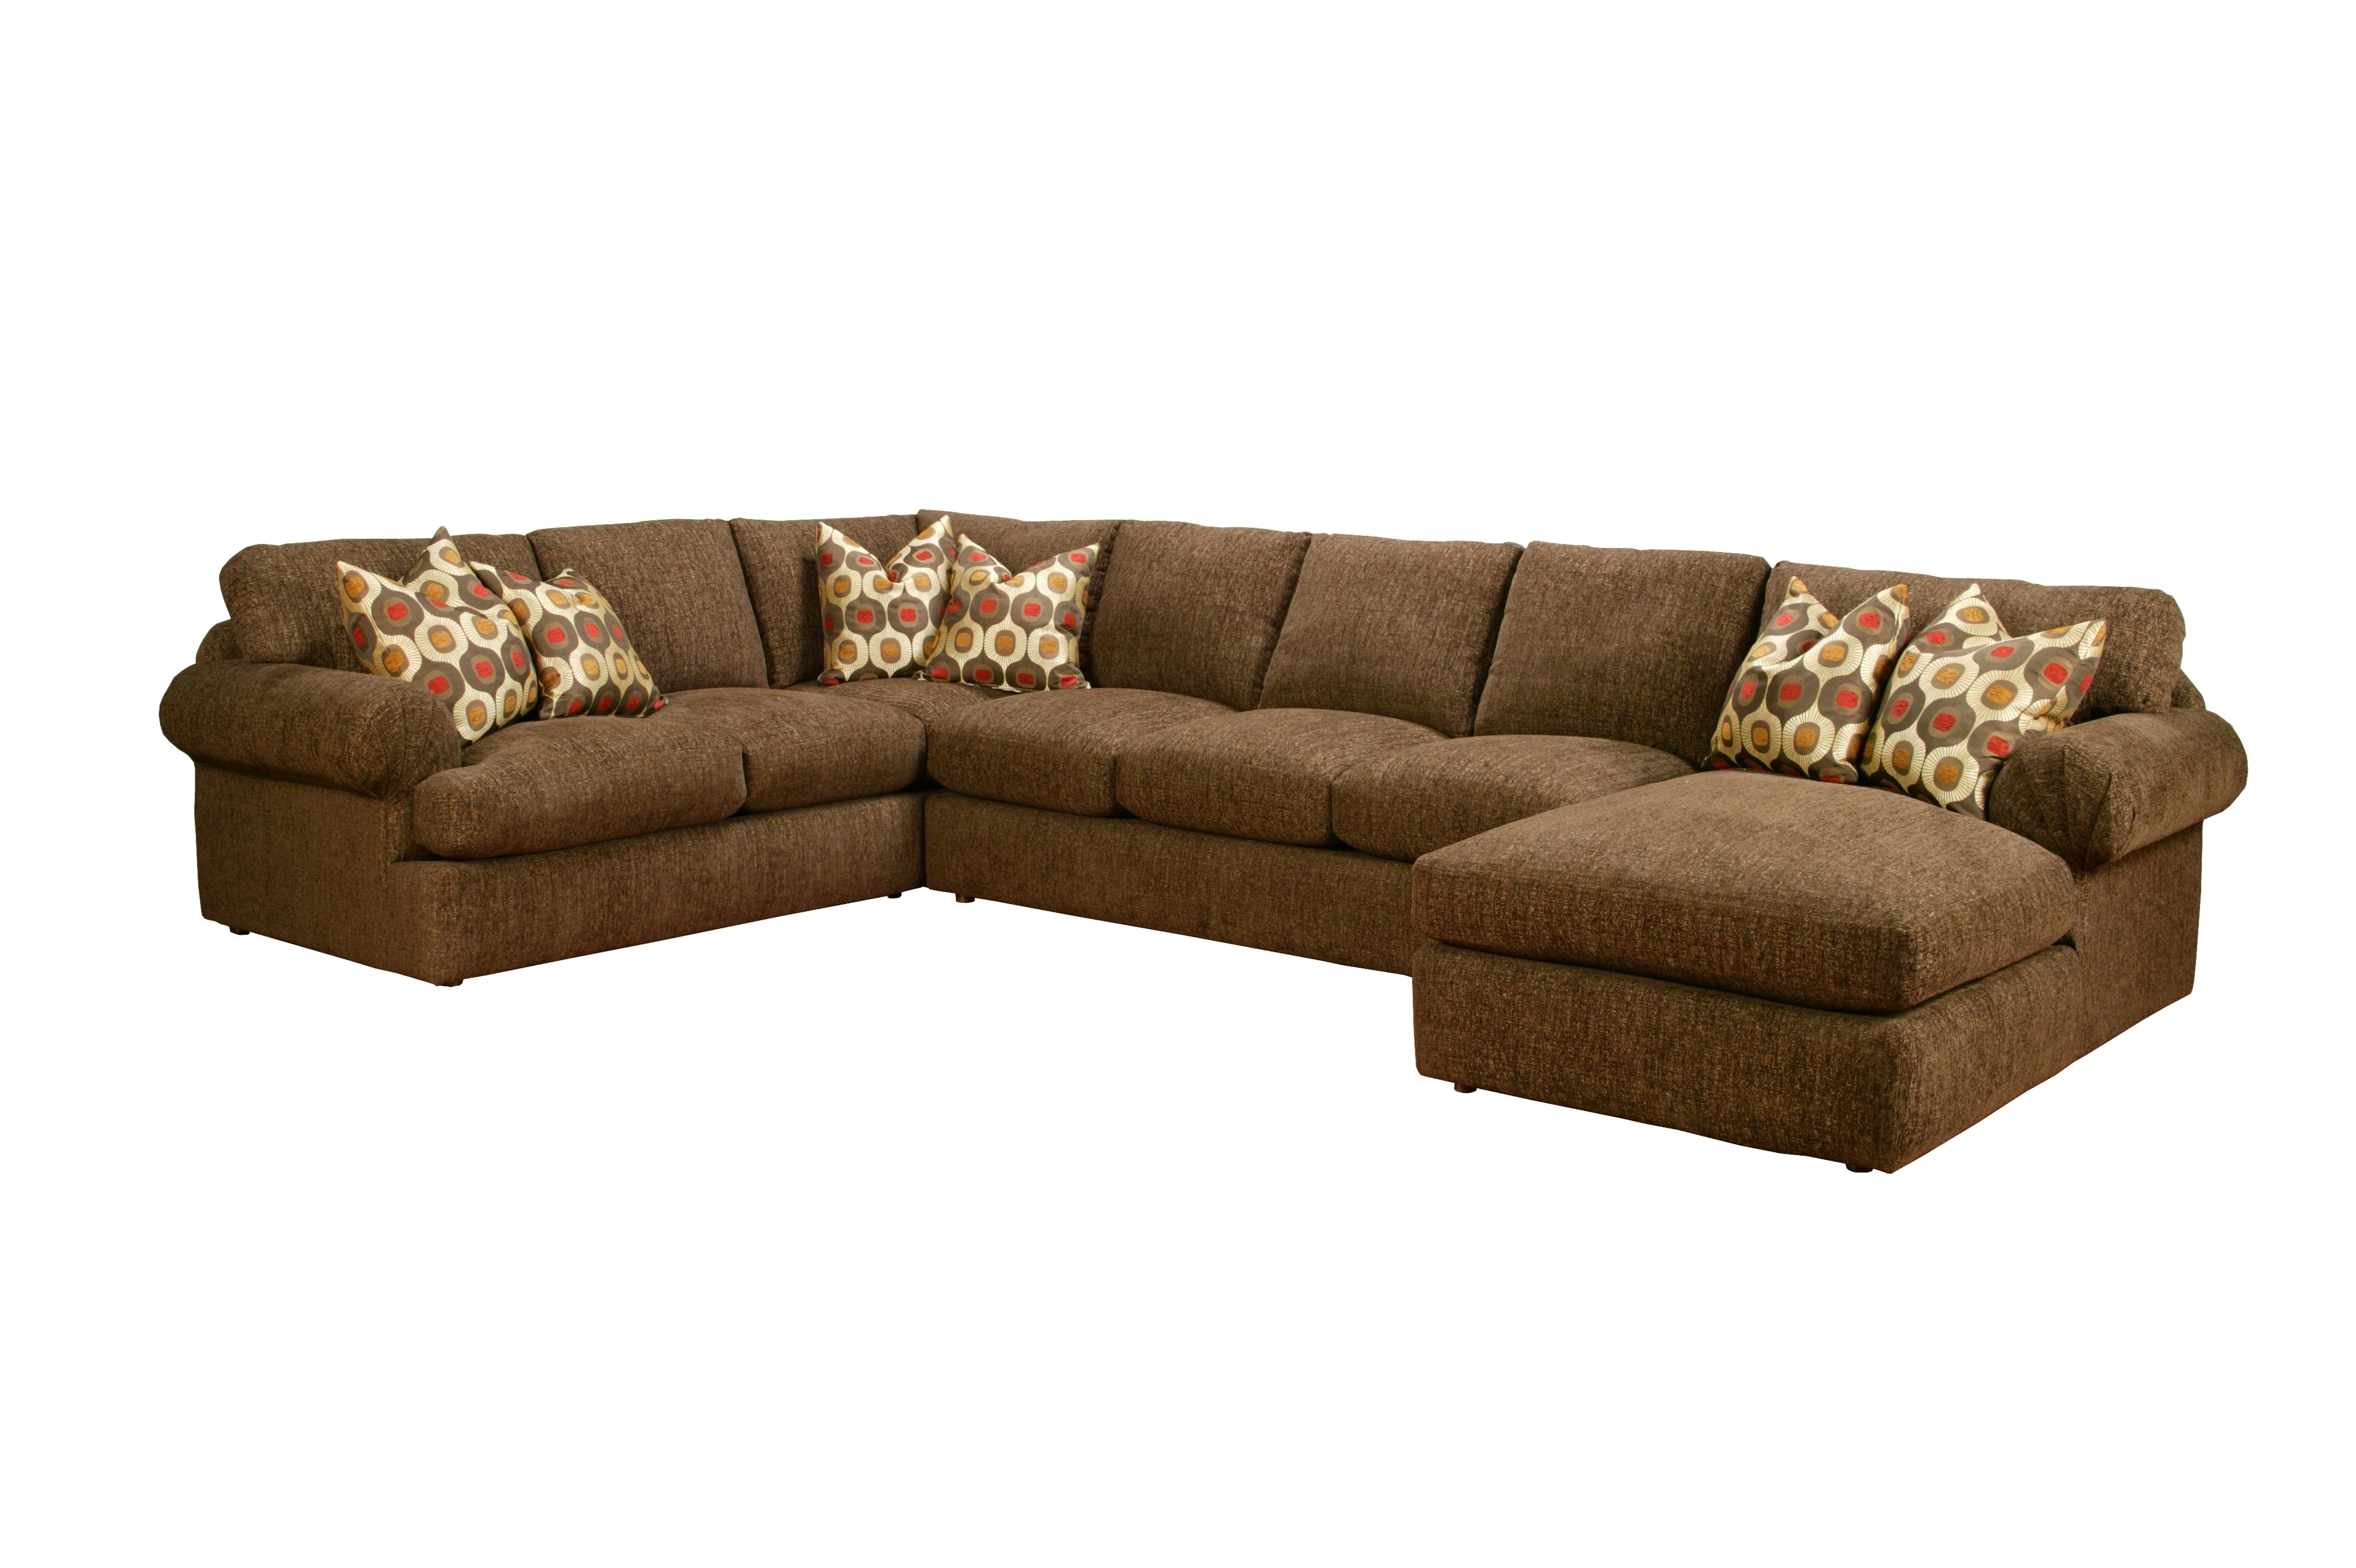 Robert Michael Fifth Ave Sofa Sectionals Phoenix Arizona In Well Known Phoenix Sectional Sofas (View 14 of 15)